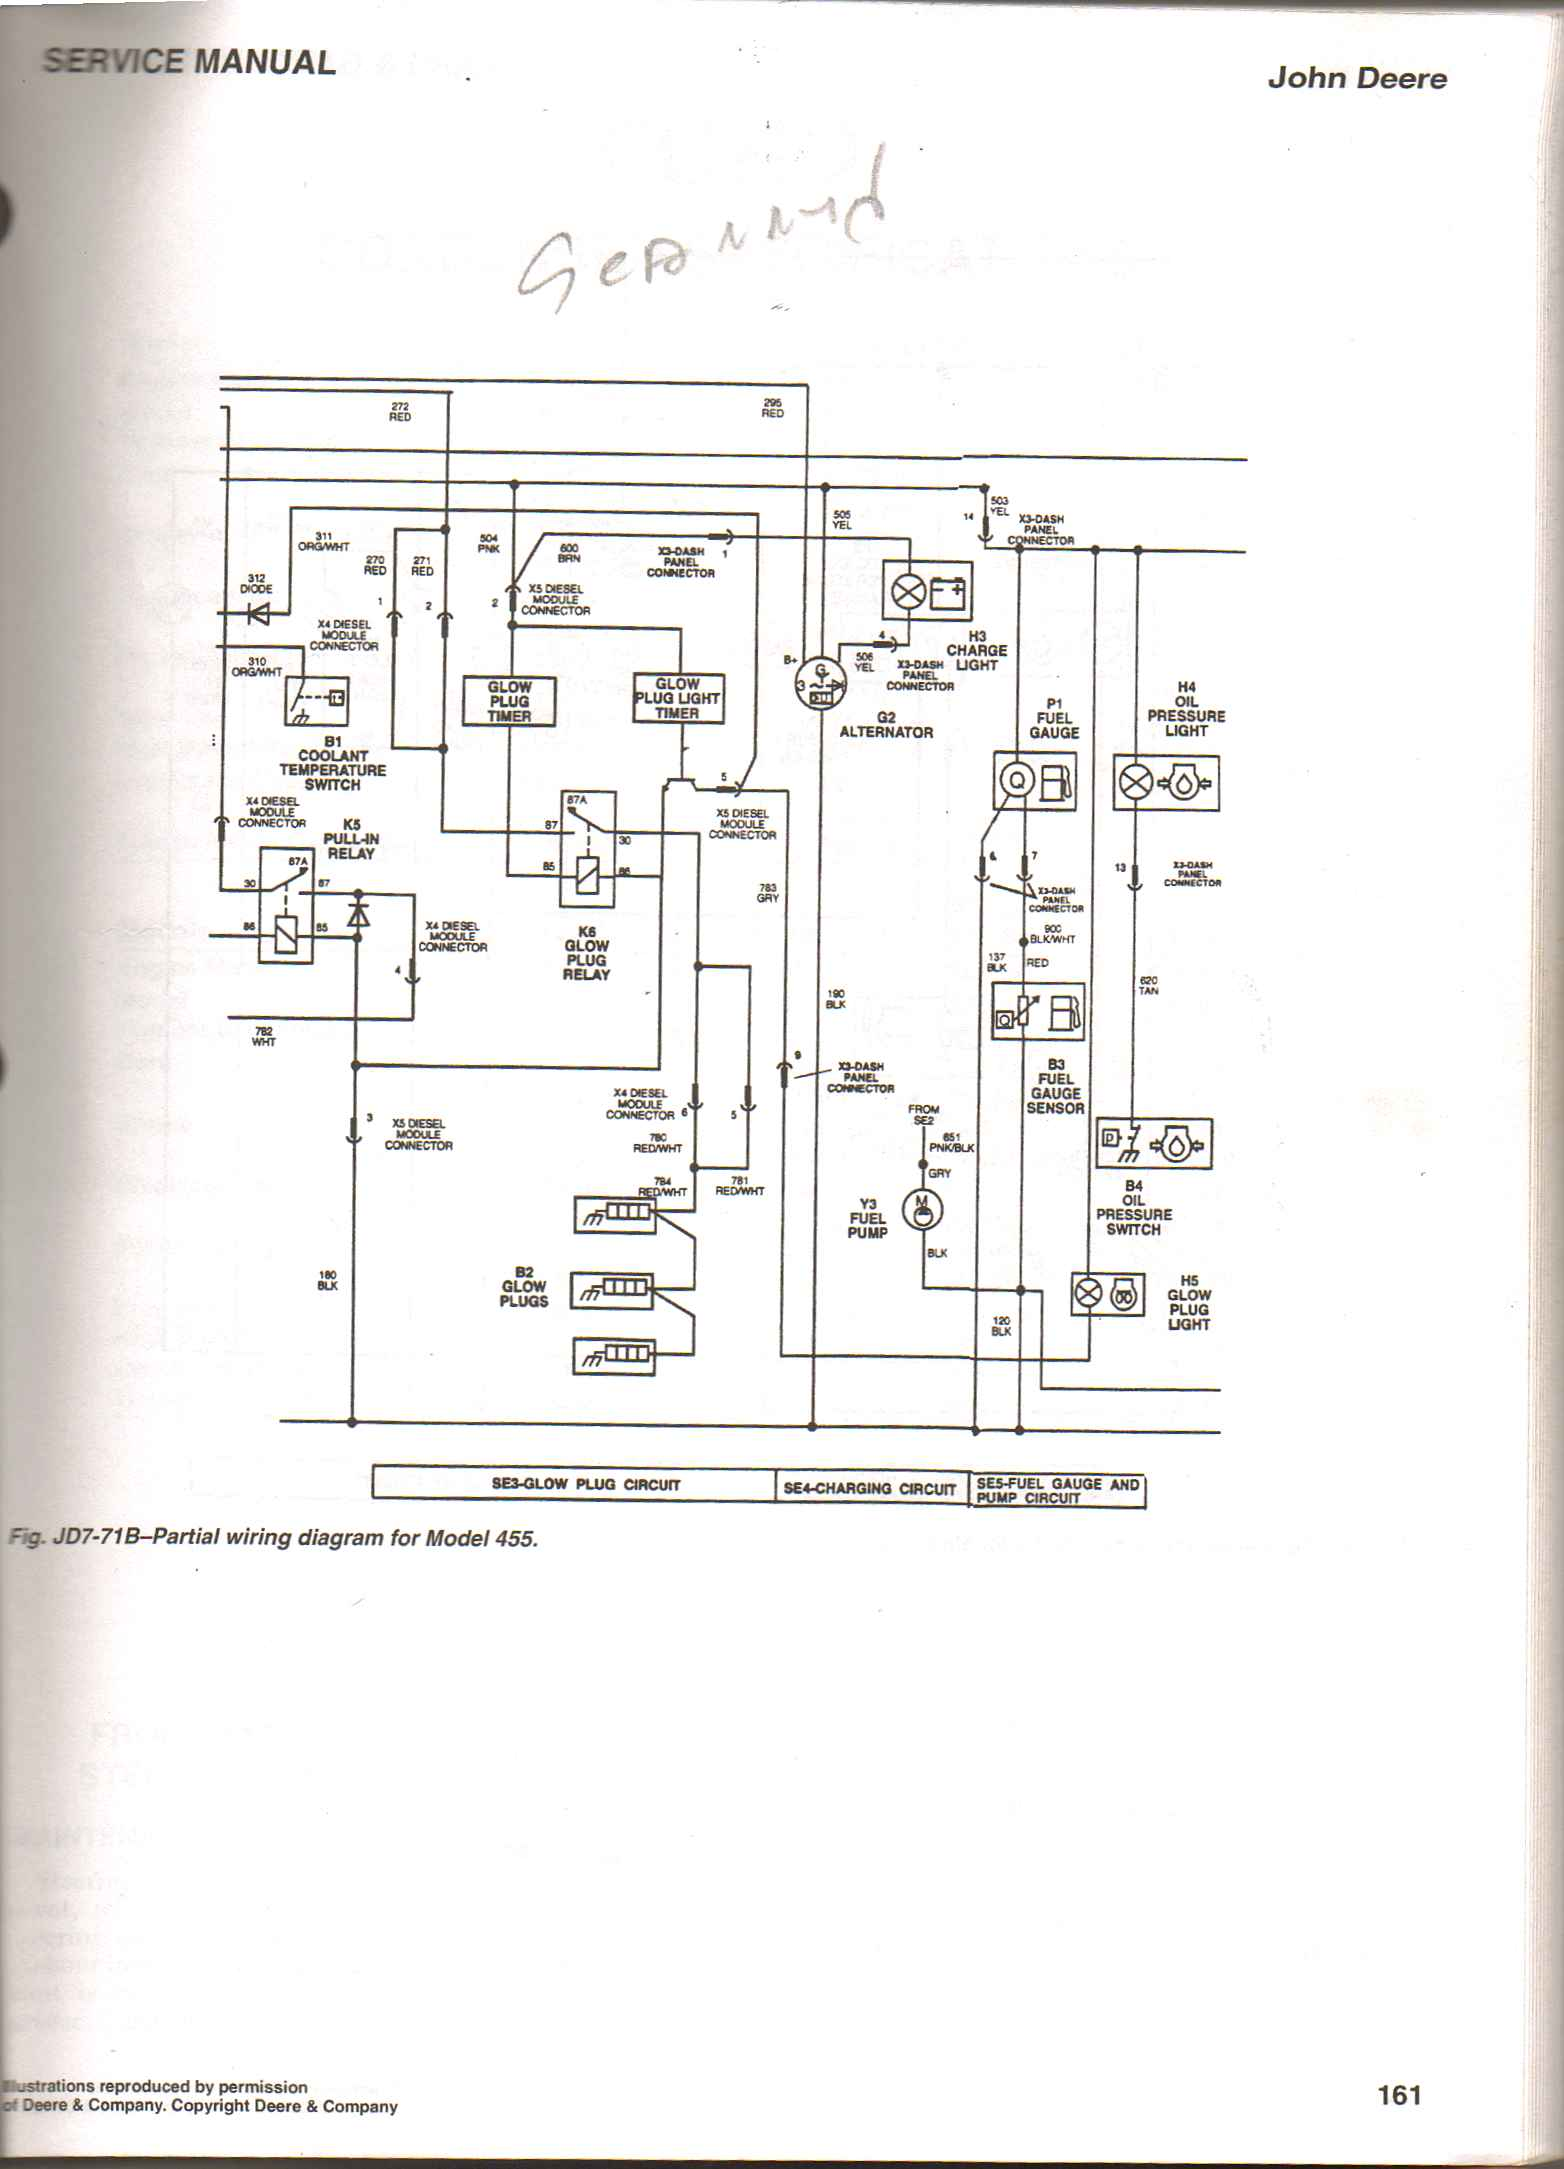 John Deere 445 Wiring Harness Diagram